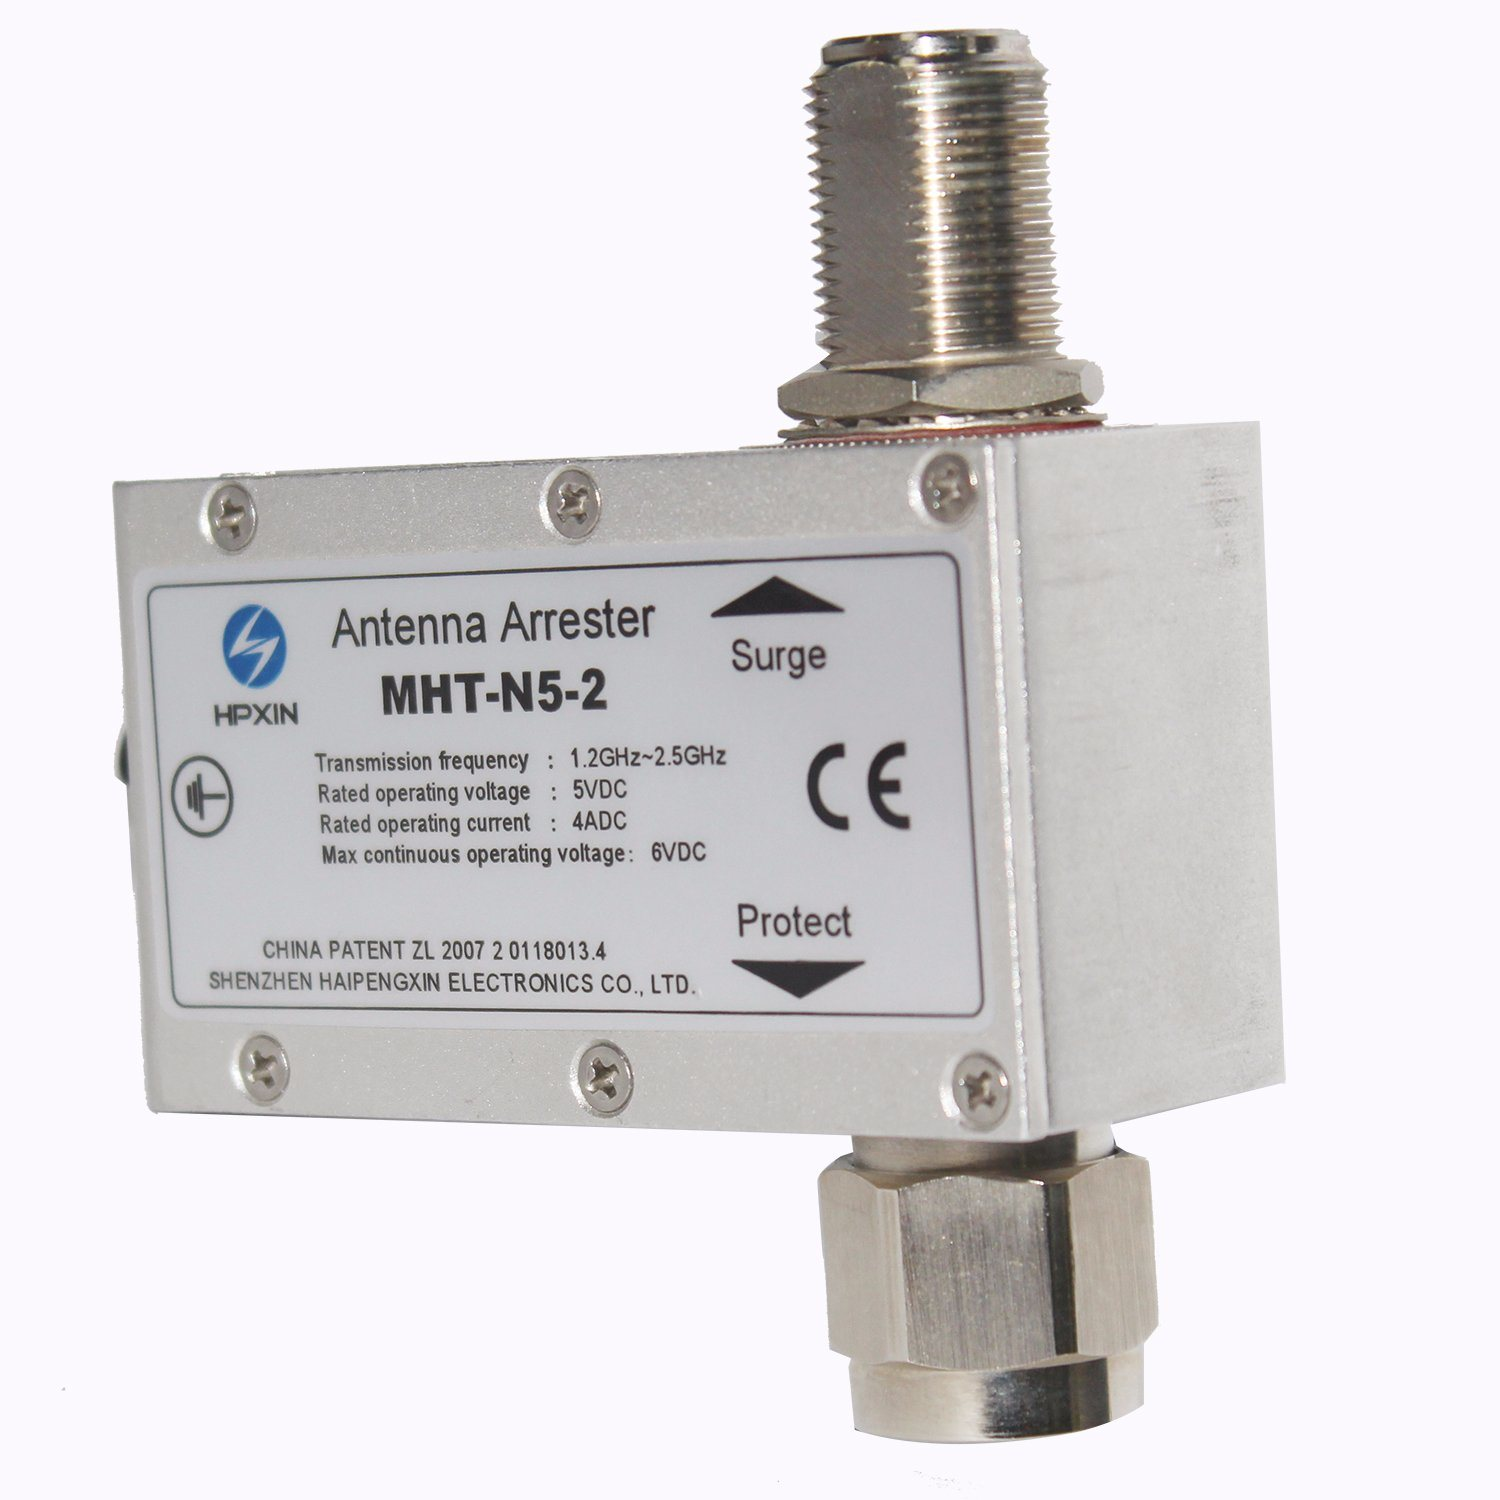 [Hot Item] Hpxin MHT-N5-2 Antenna Feeder N Type Connector Surge Protection  Device Surge Arrester SPD